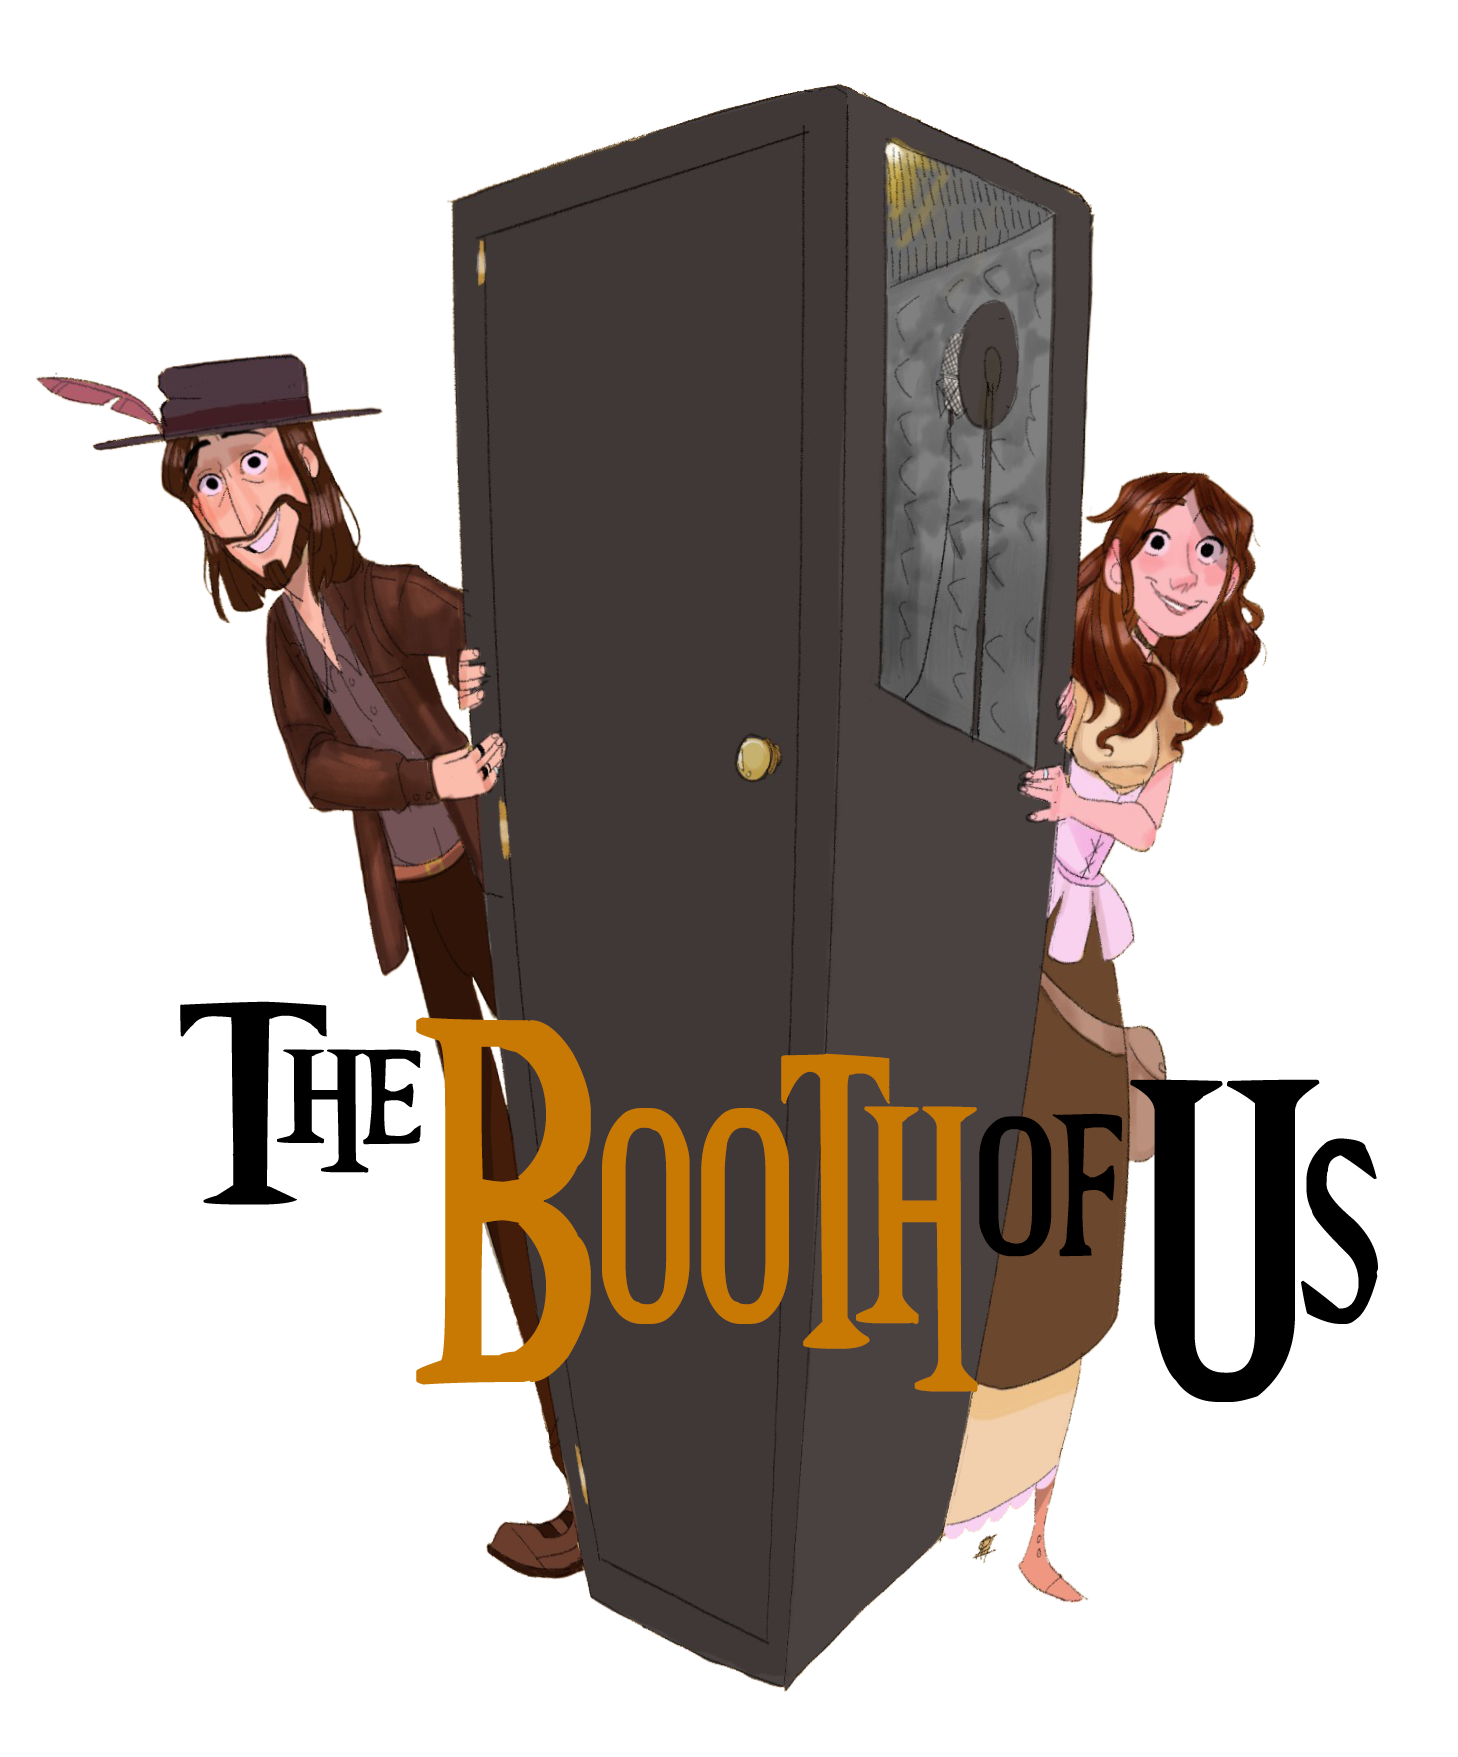 The Booth Of Us